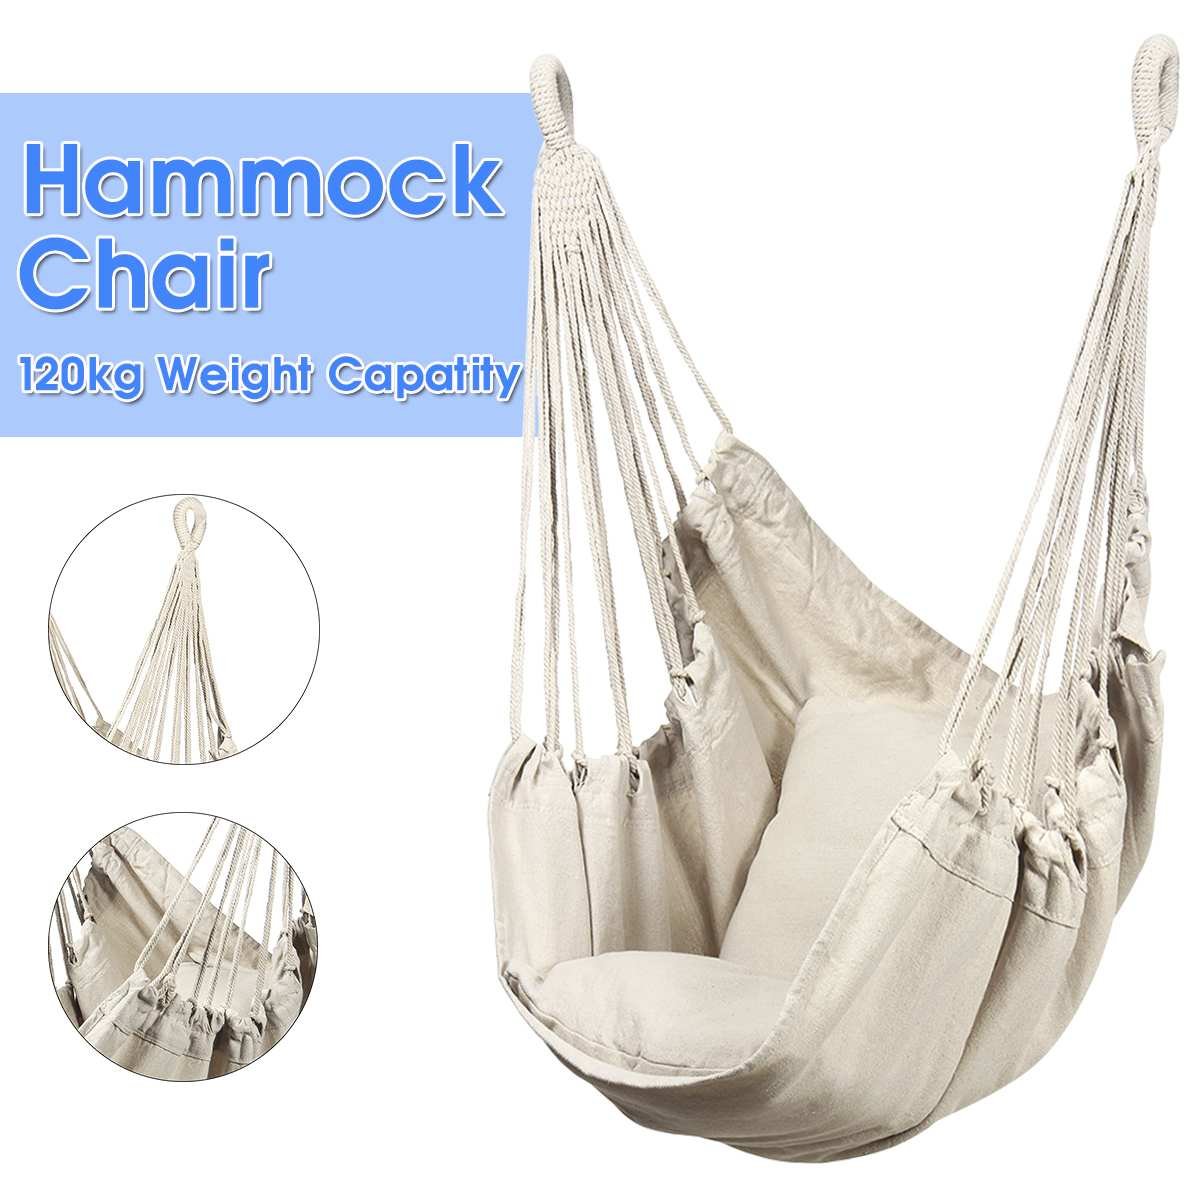 Instyle Swing Seat Hammock Chair Swing Chair Patio Swing Outdoor Garden Hanging Chair Travel Camping Hammock Silla Colgante(China)